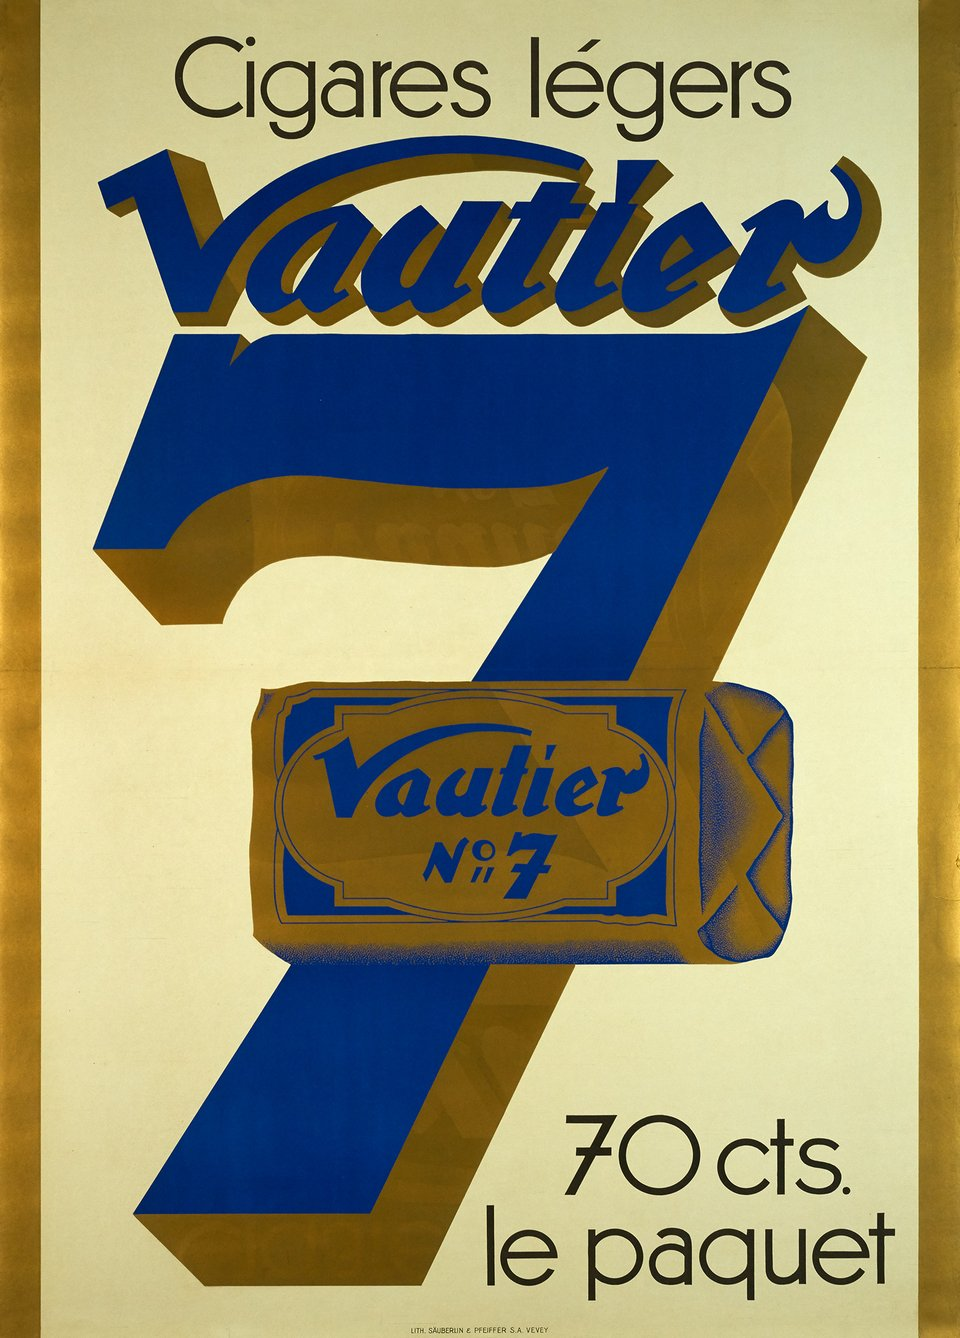 Cigares légers Vautier 7 – Vintage poster – ANONYMOUS – 1930